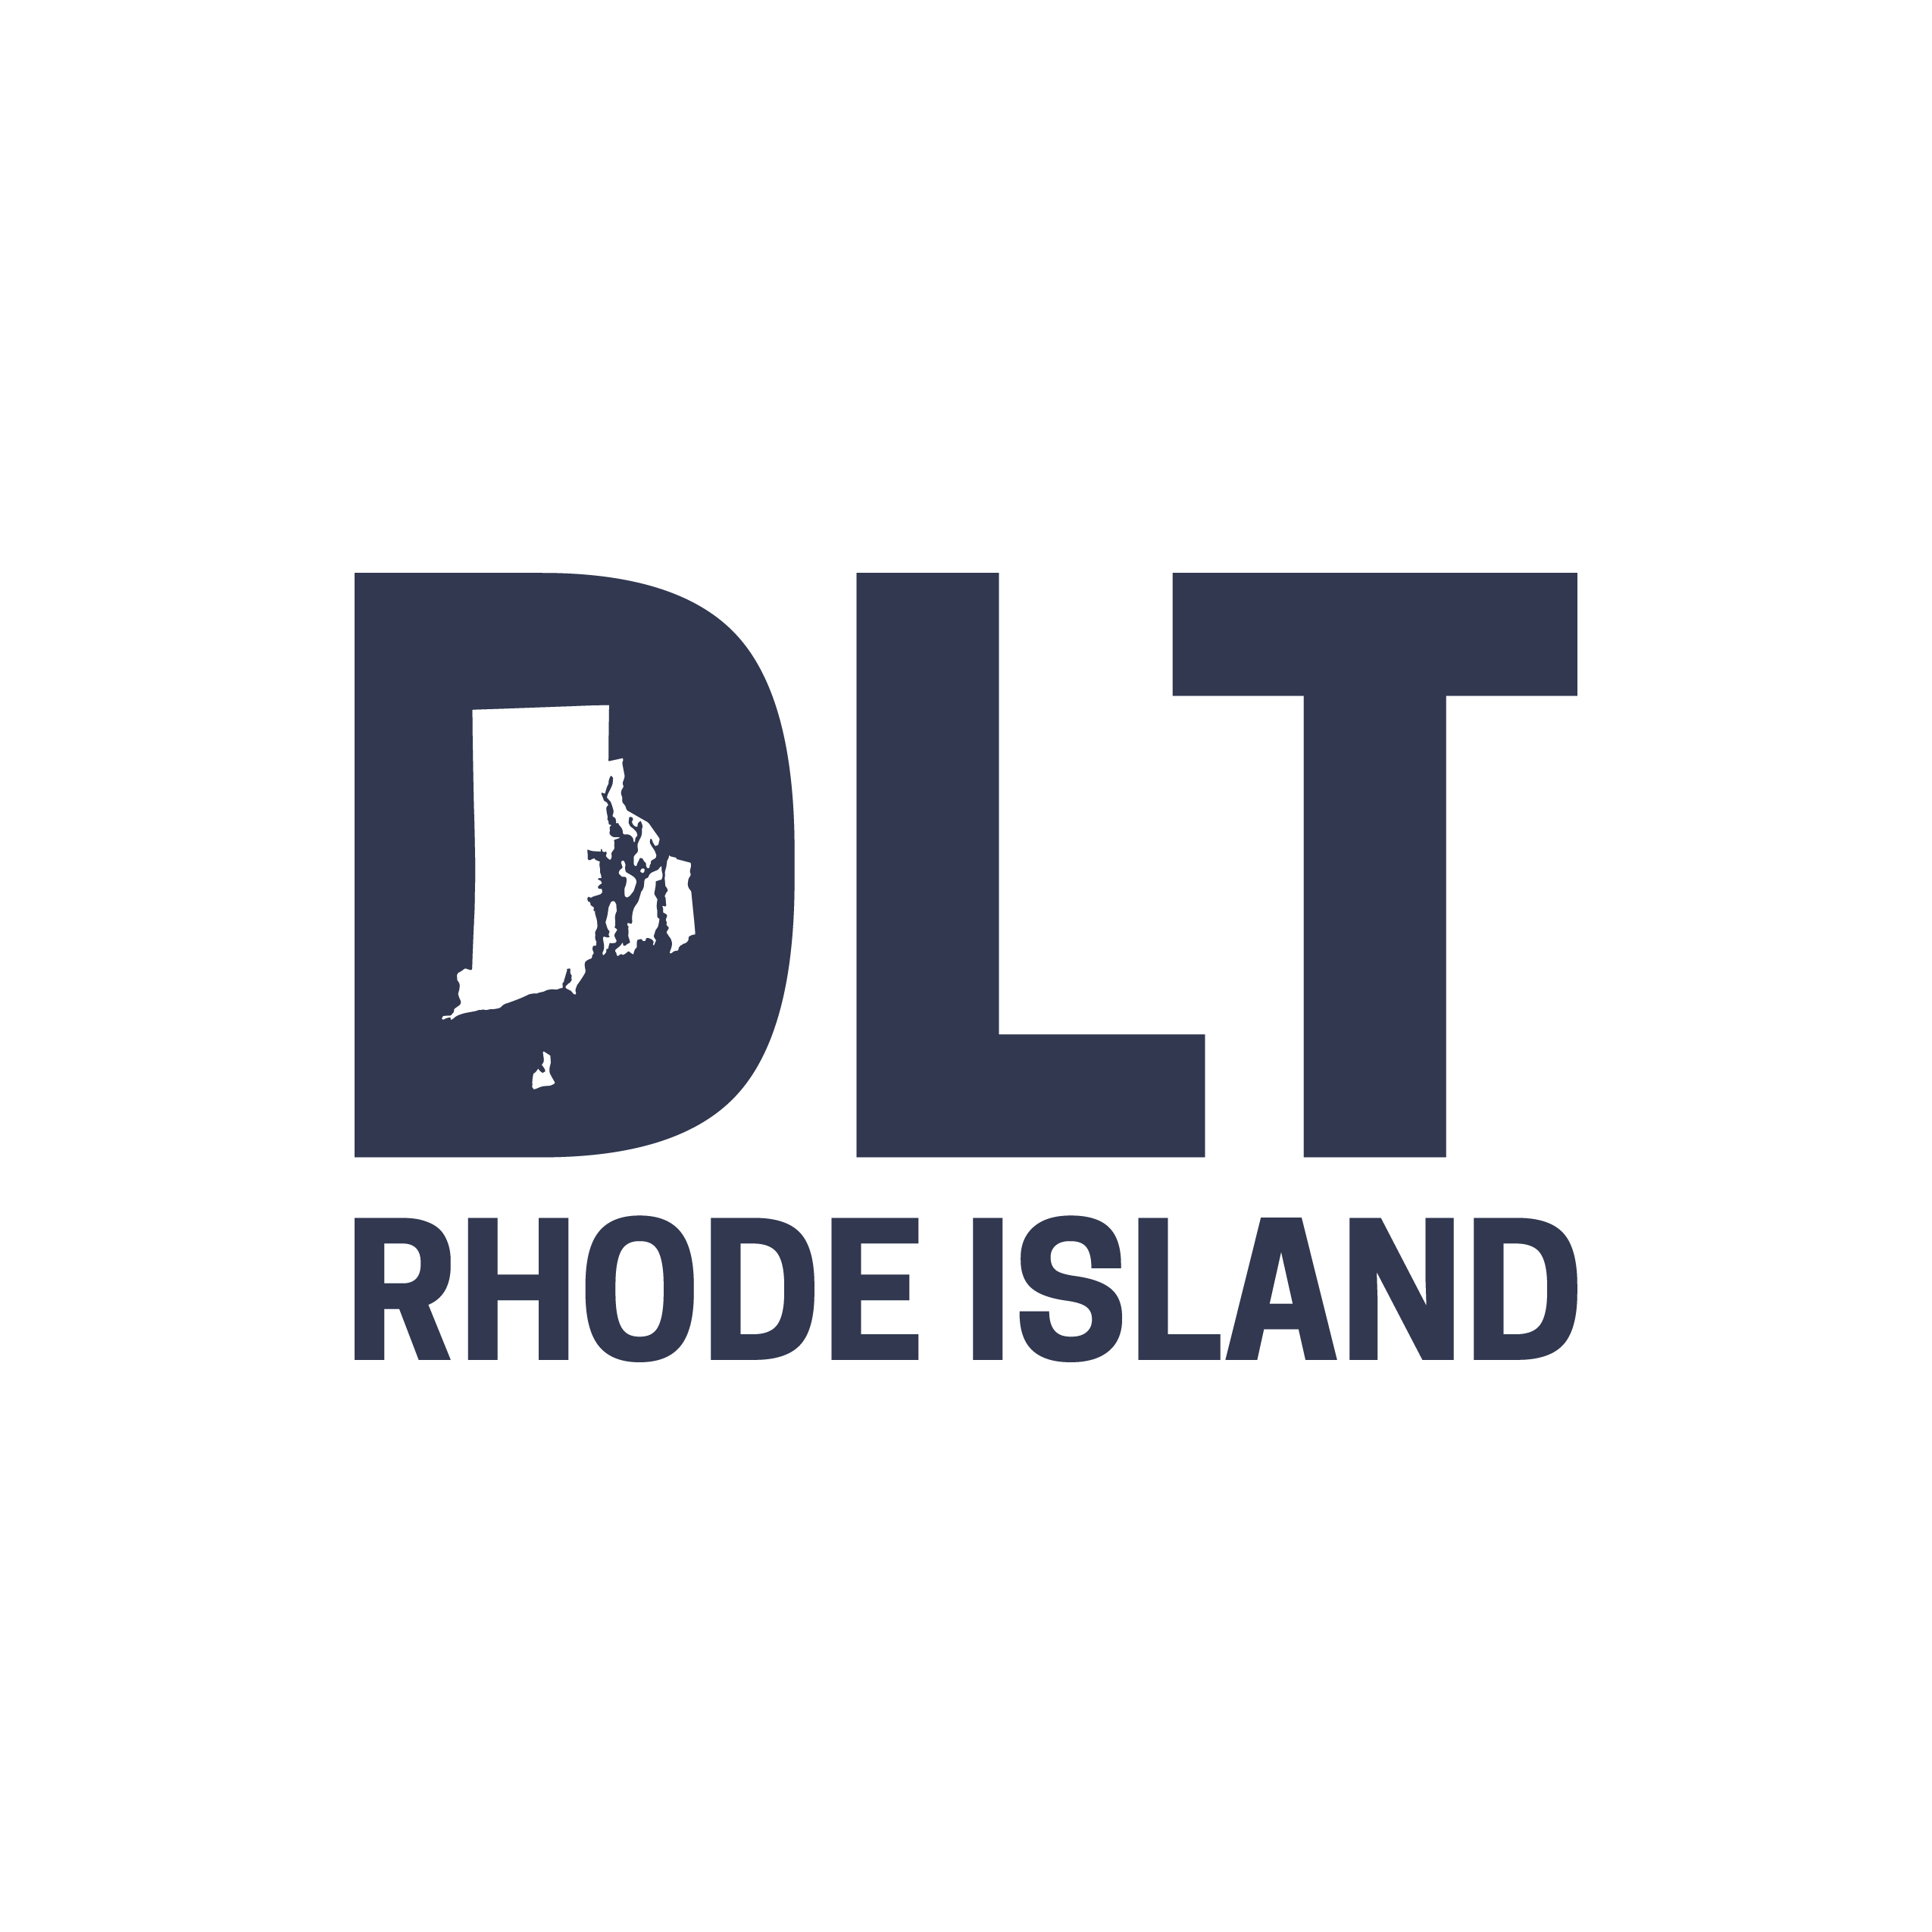 Rhode Island Department of Labor and Training